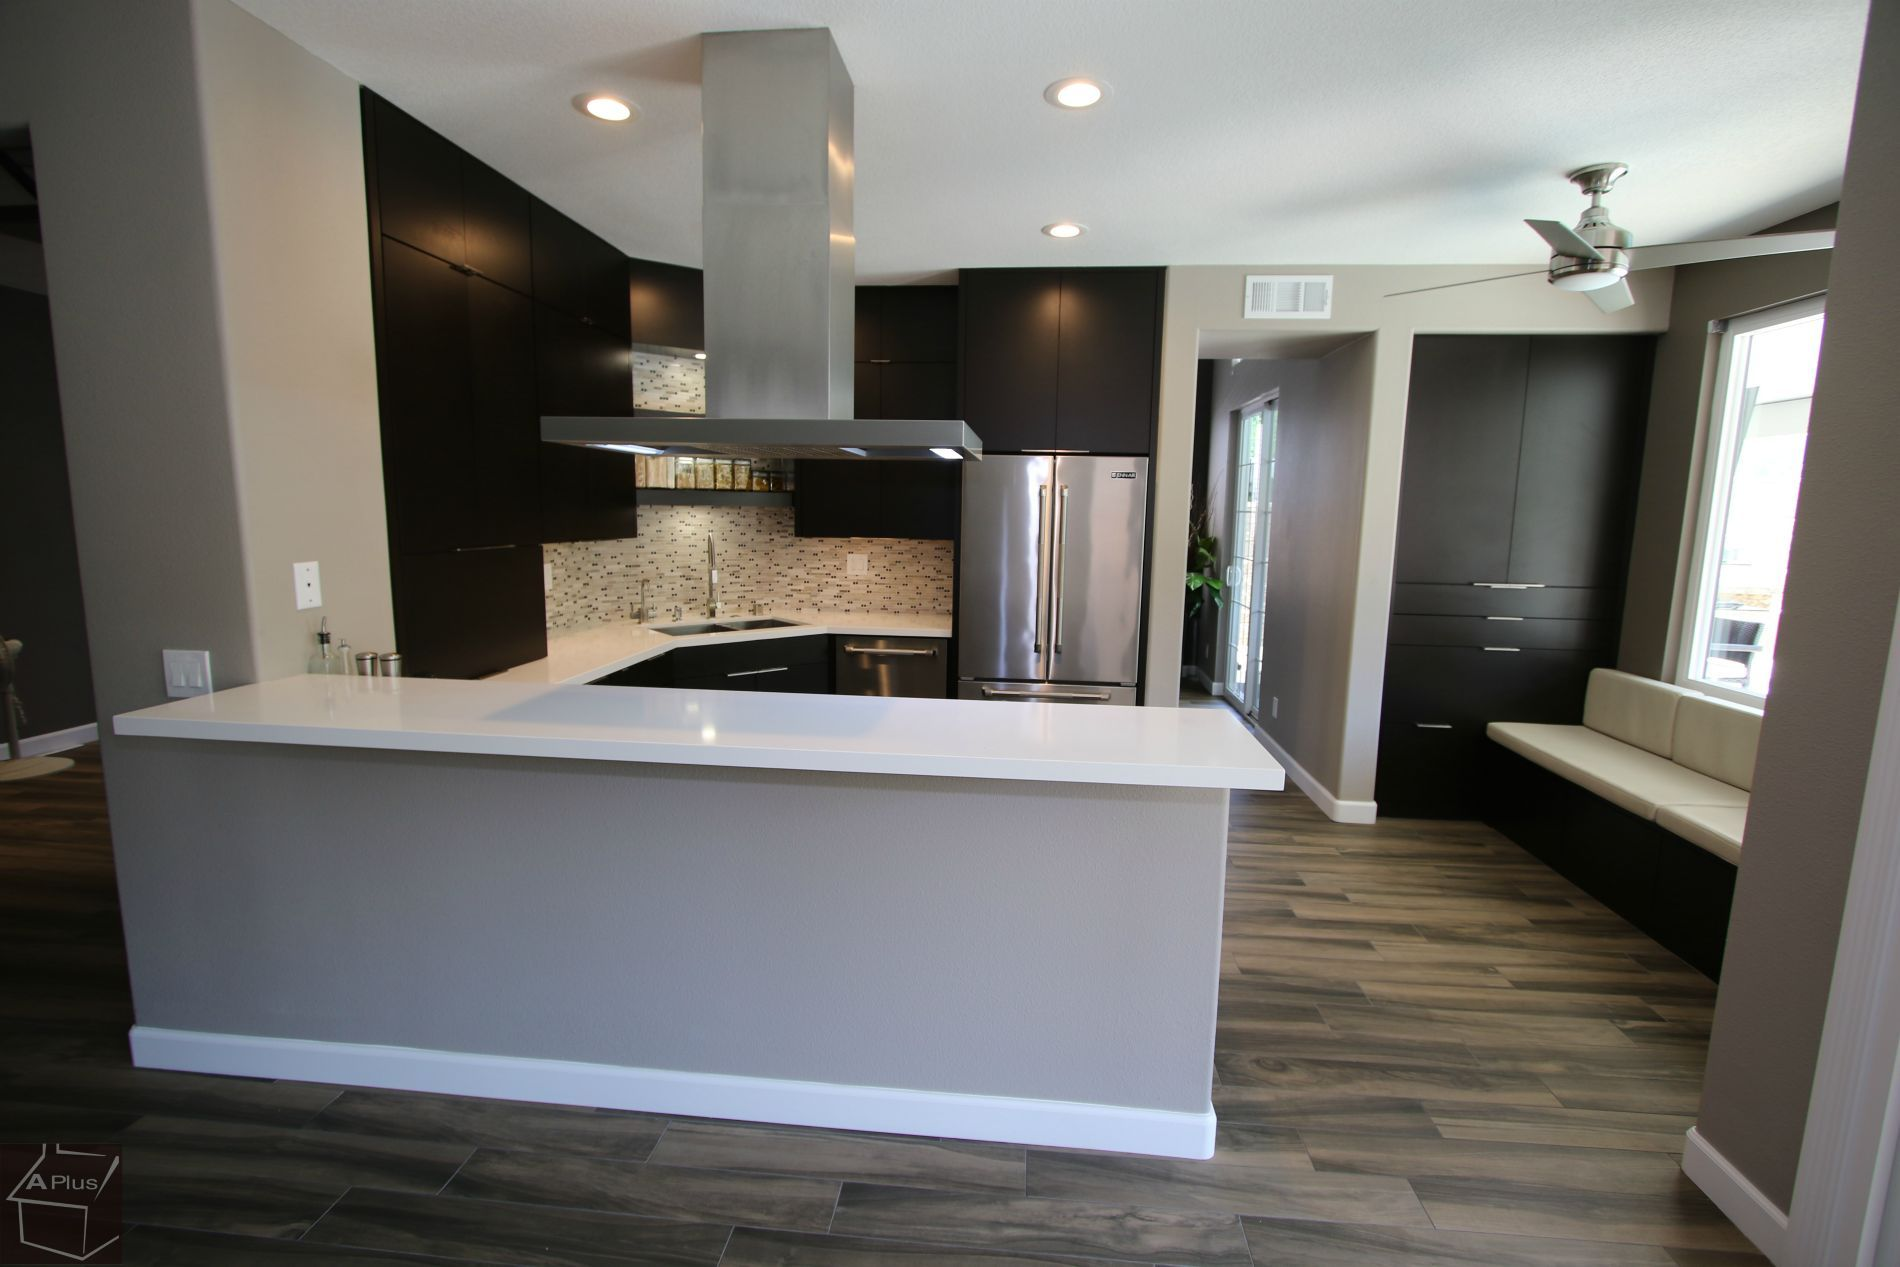 Design Build Modern Kitchen Remodel With APlus Sophia Line Cabinets In  Chino Hills Orange County